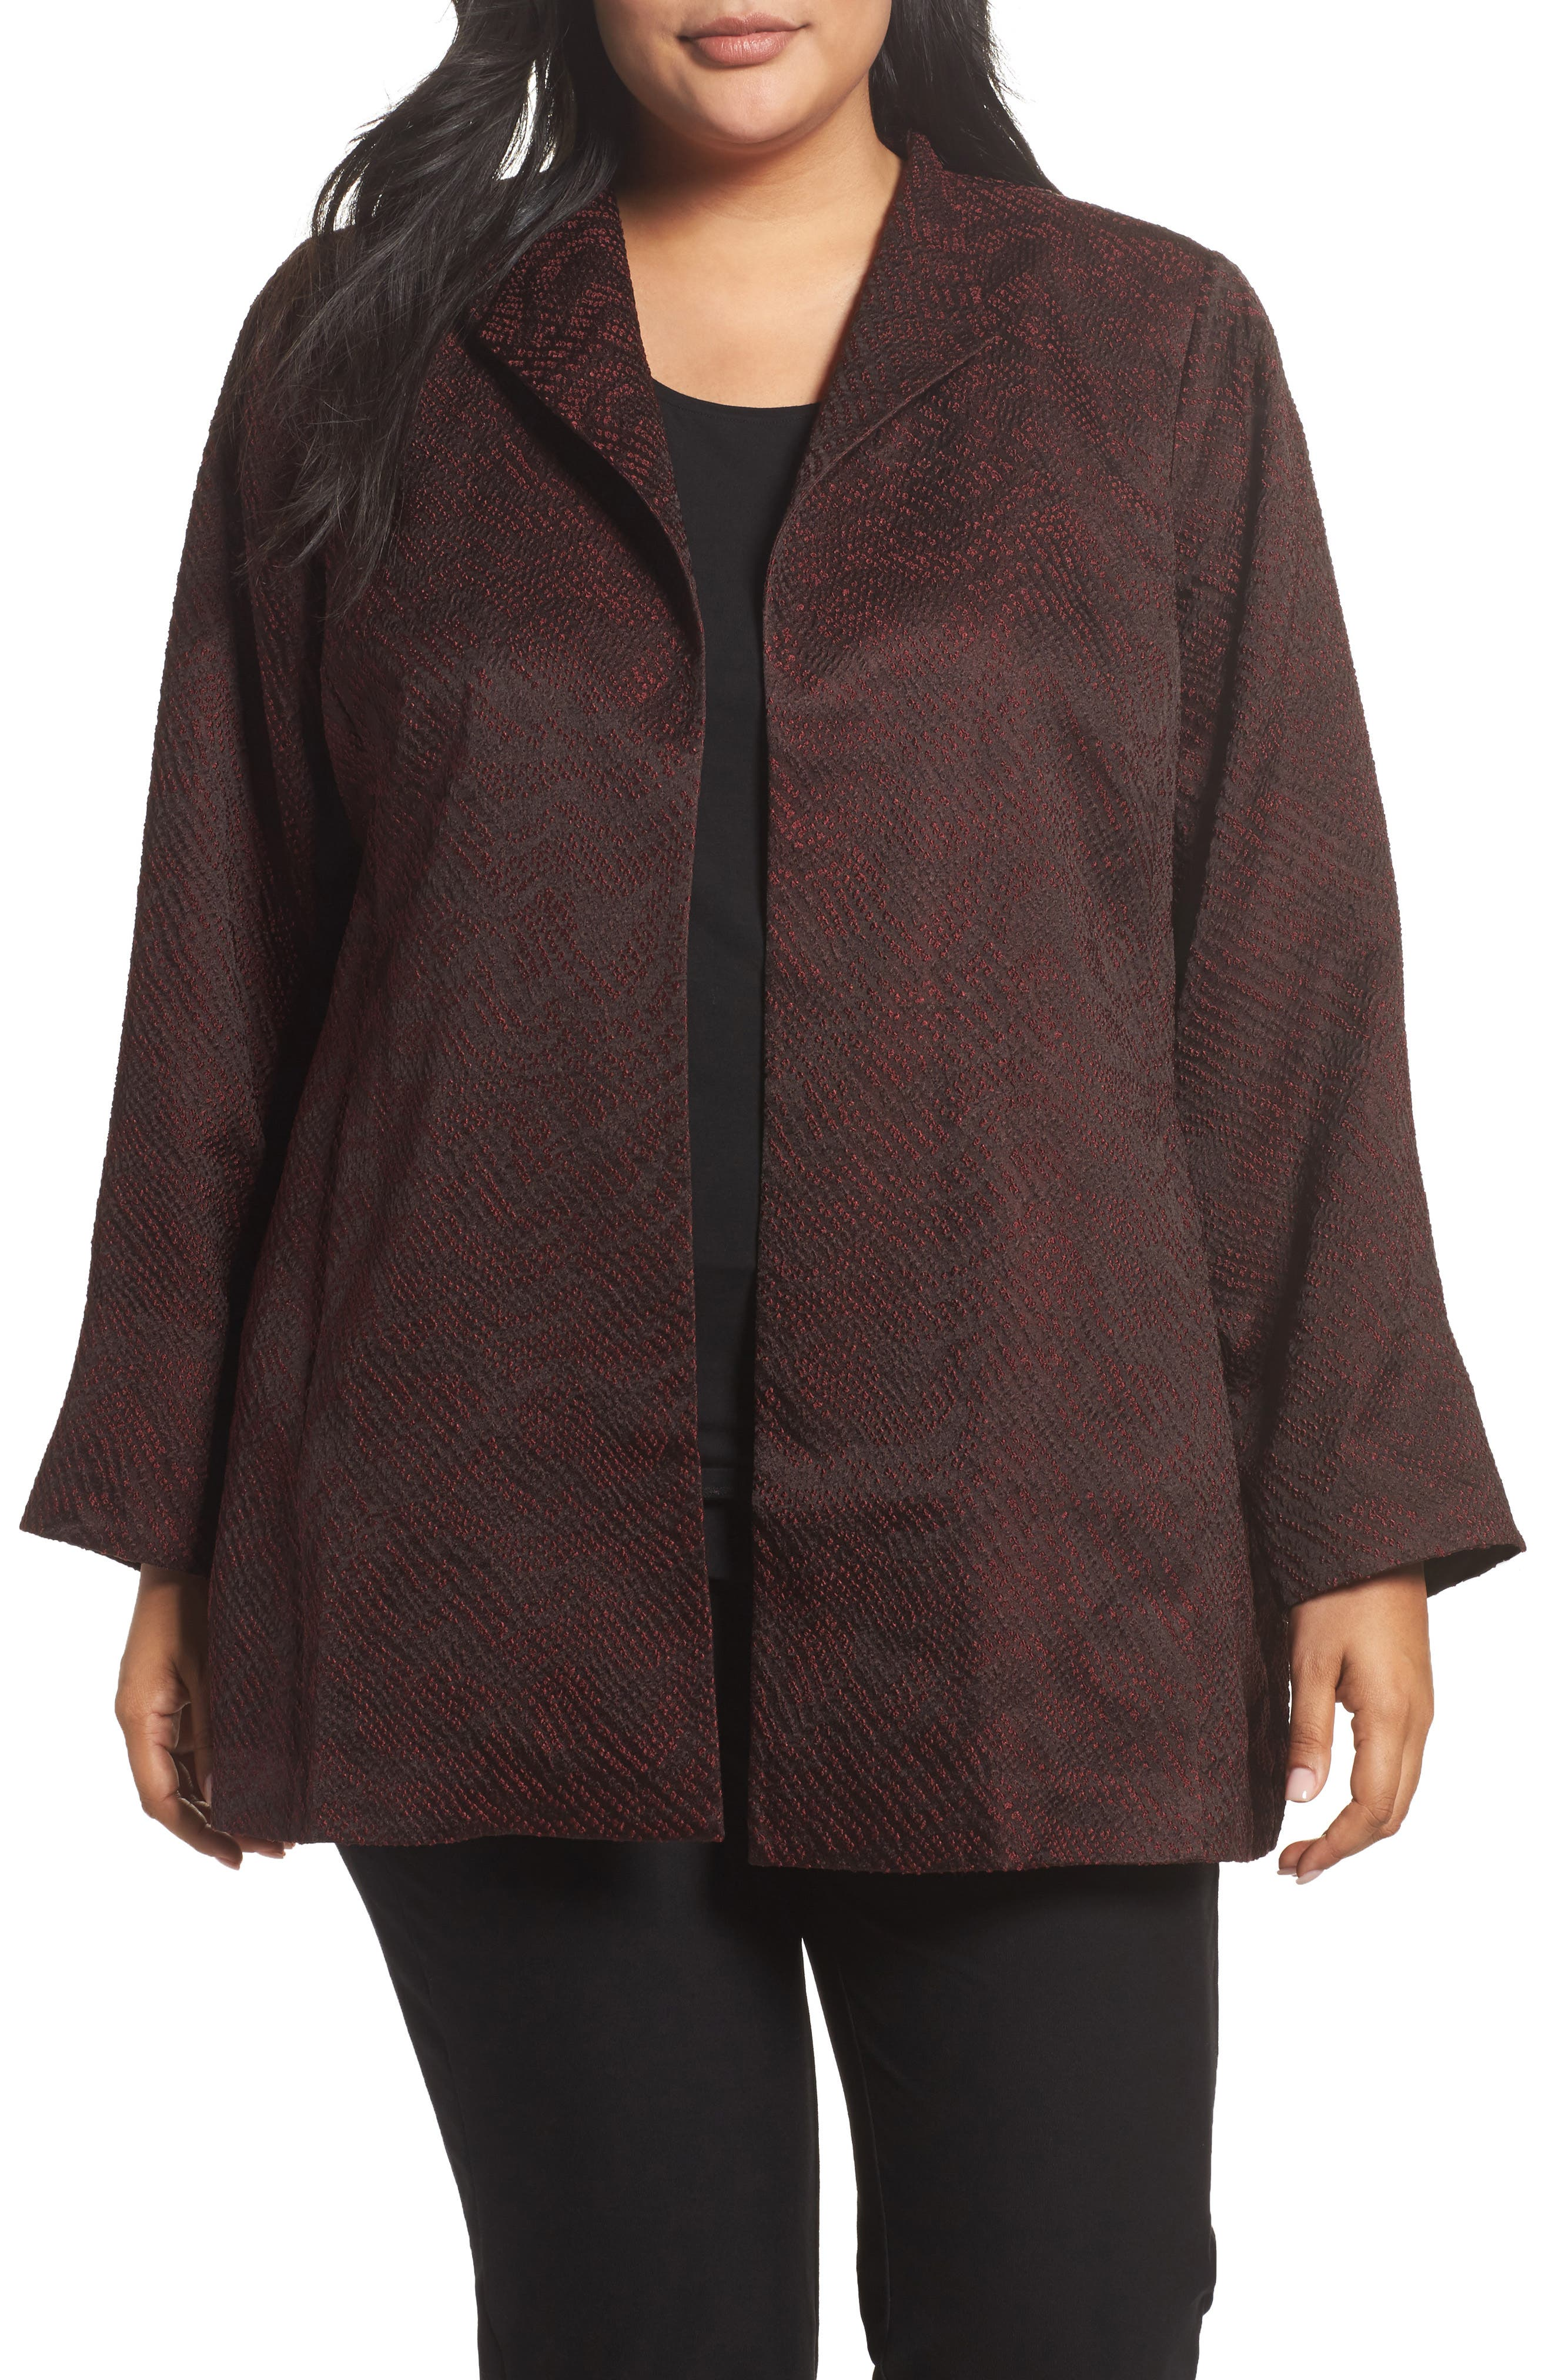 Eileen Fisher Silk Blend Jacquard Jacket (Plus Size)